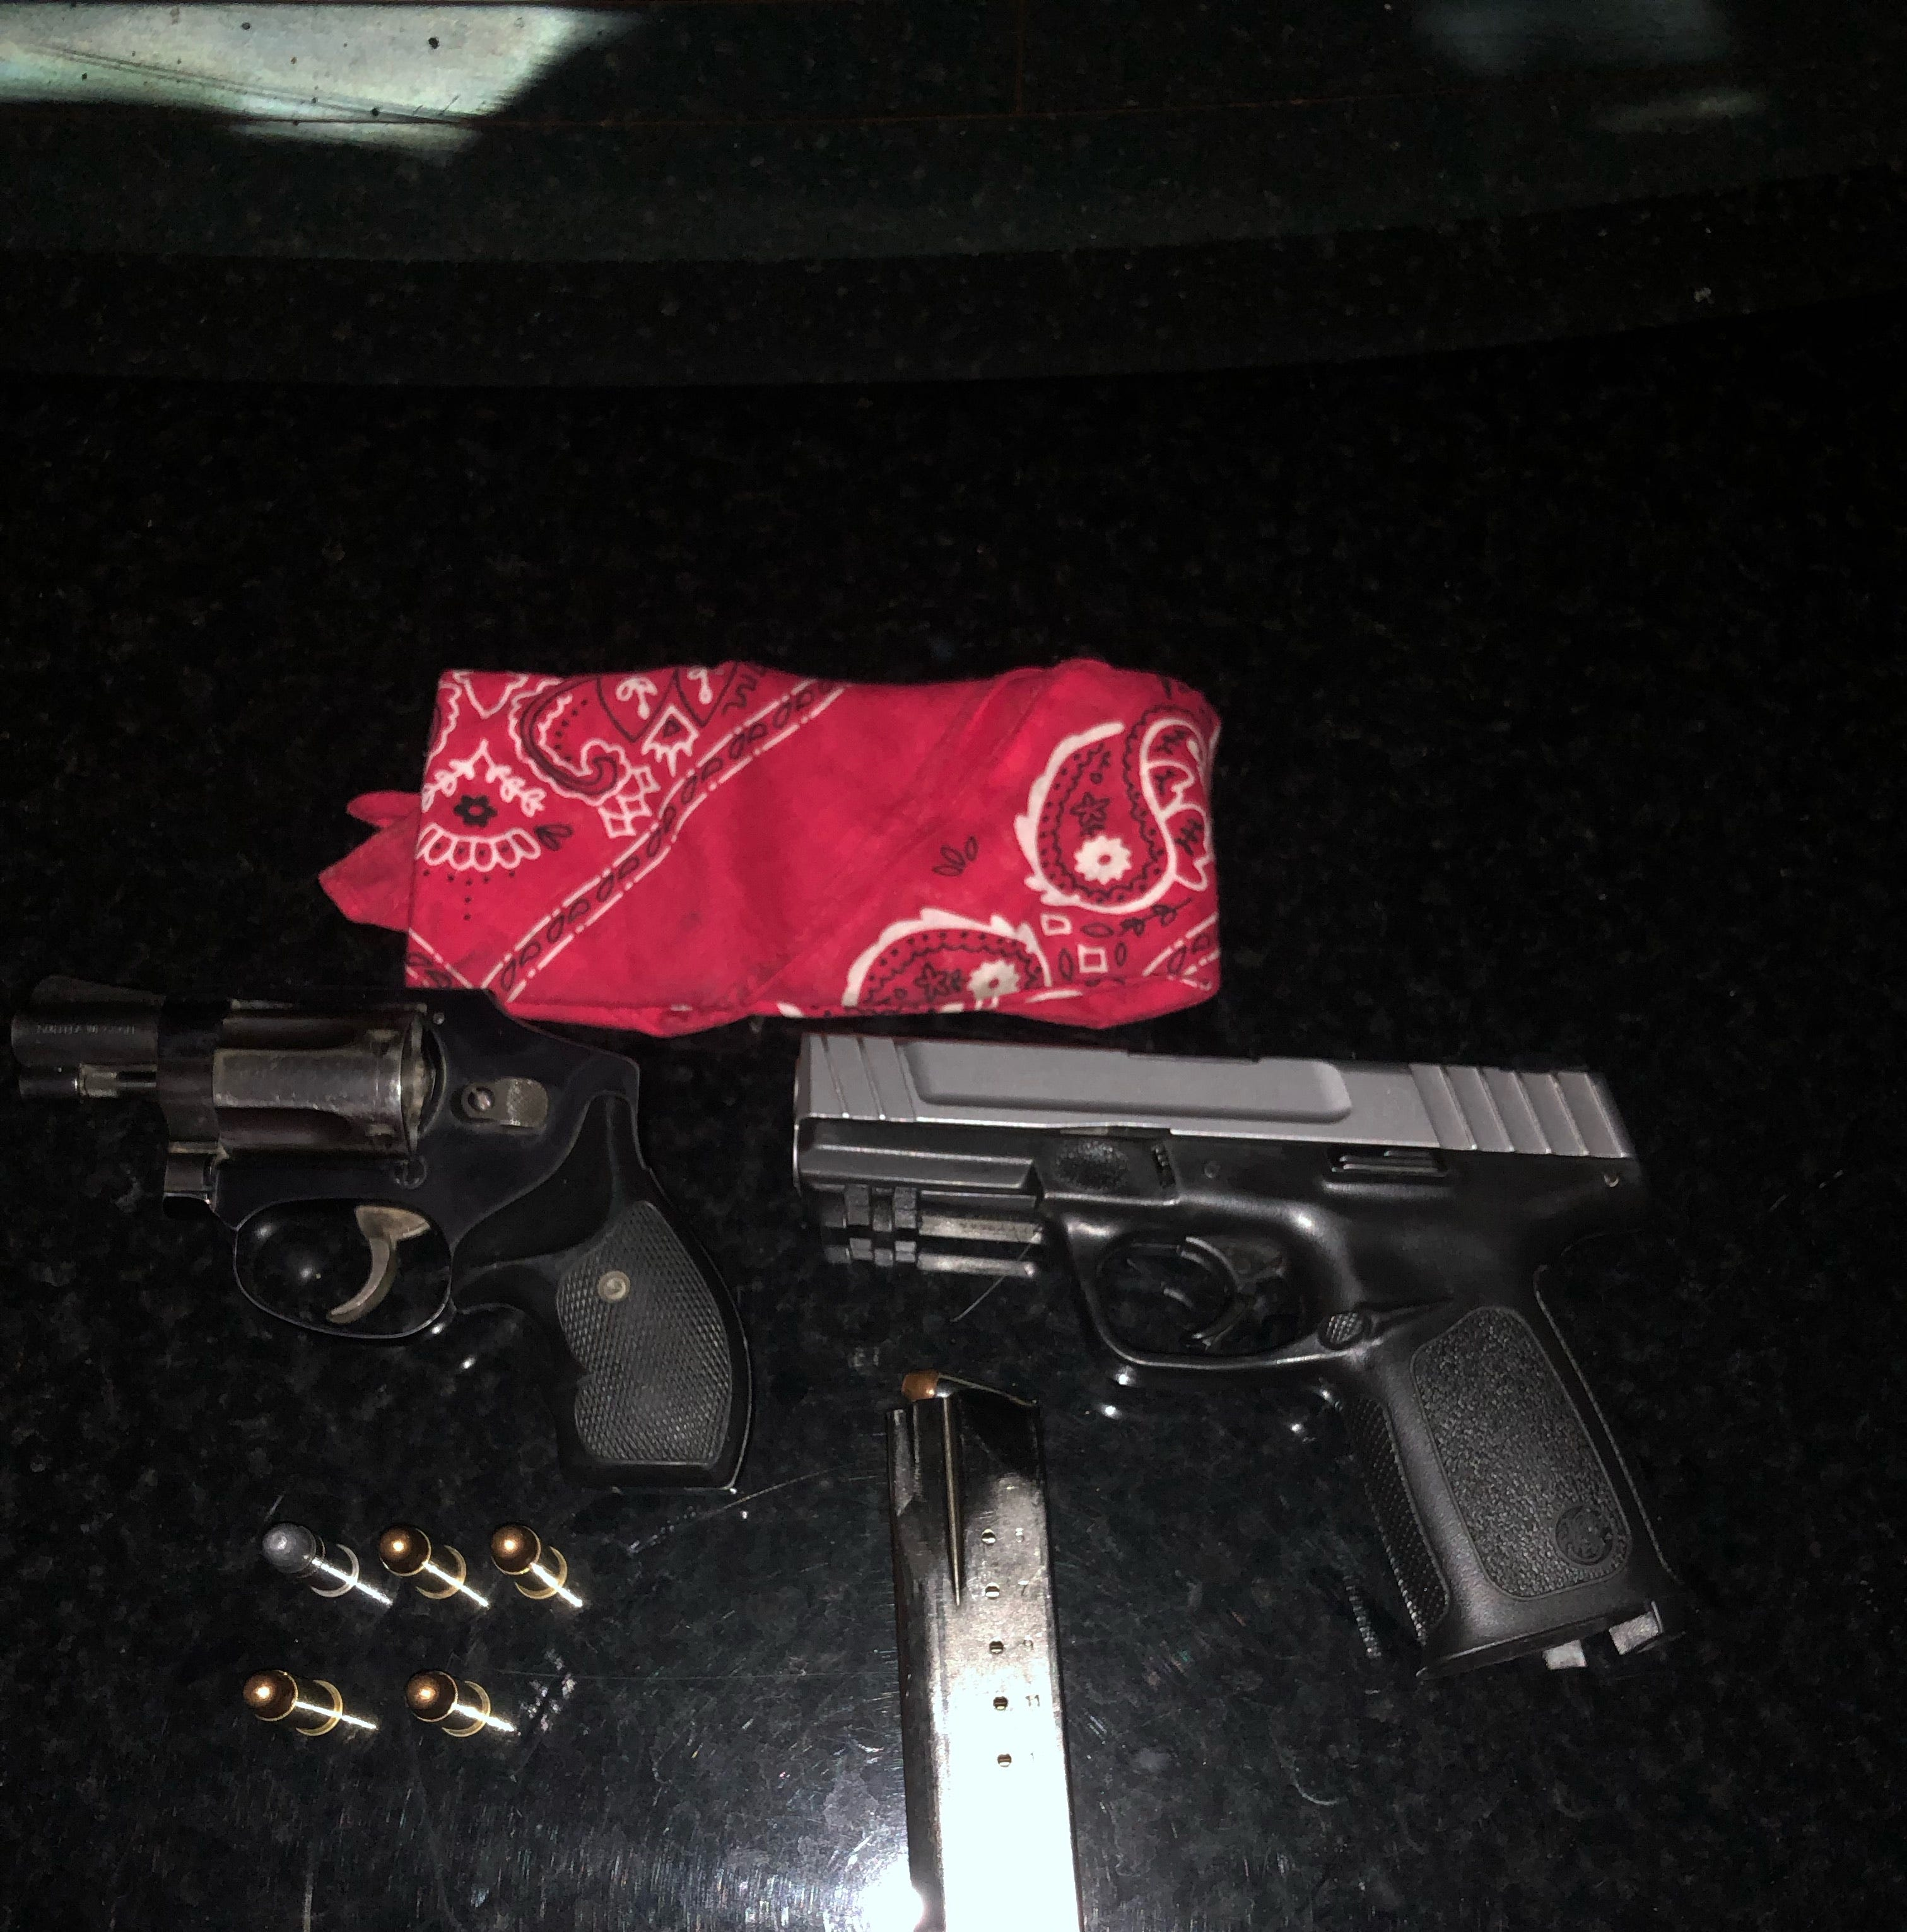 Two 'self-admitted' gang members arrested after Visalia police find loaded guns